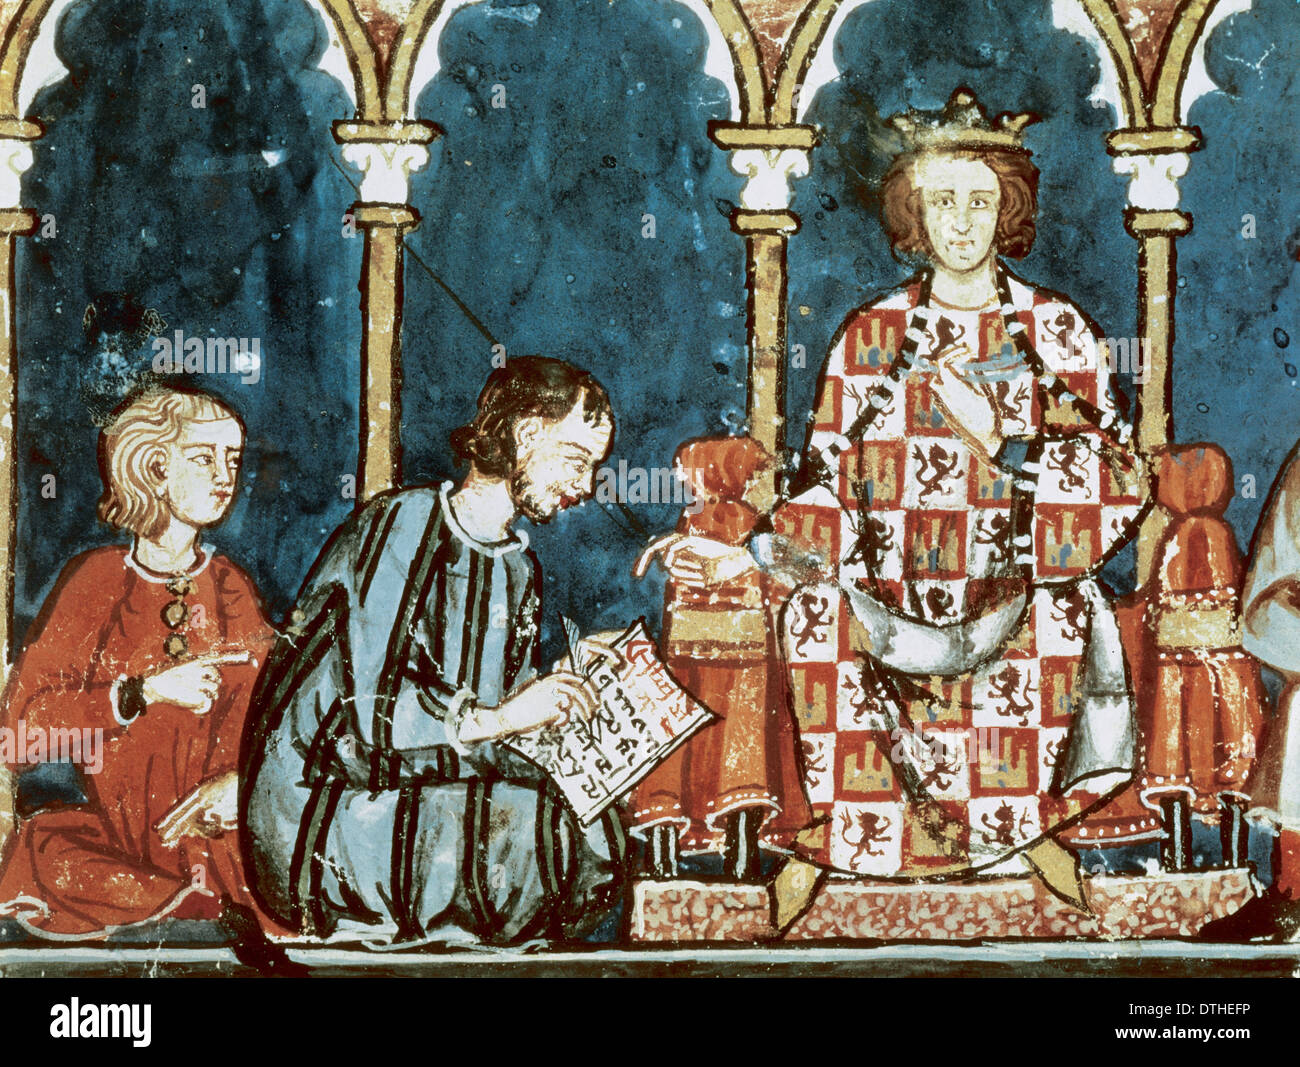 Alfonso X of Castile (1221-1284). King of Castile and Leon. Book of Games. Seville, 1282. - Stock Image